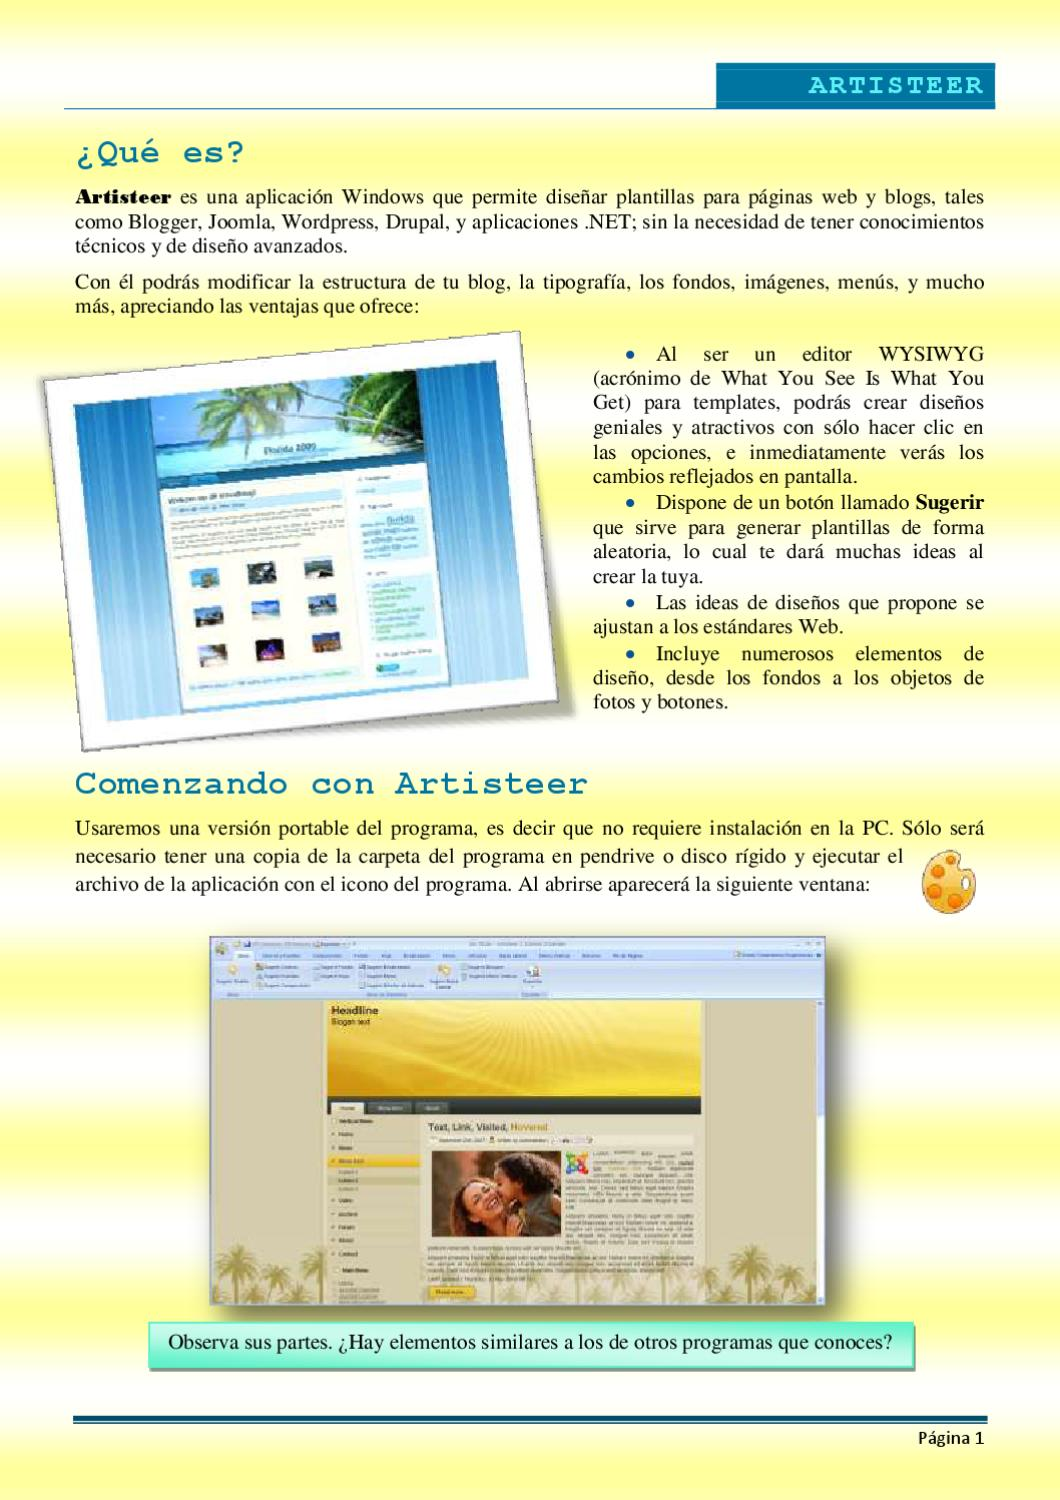 Guia de Artisteer by Maria Alicia - issuu